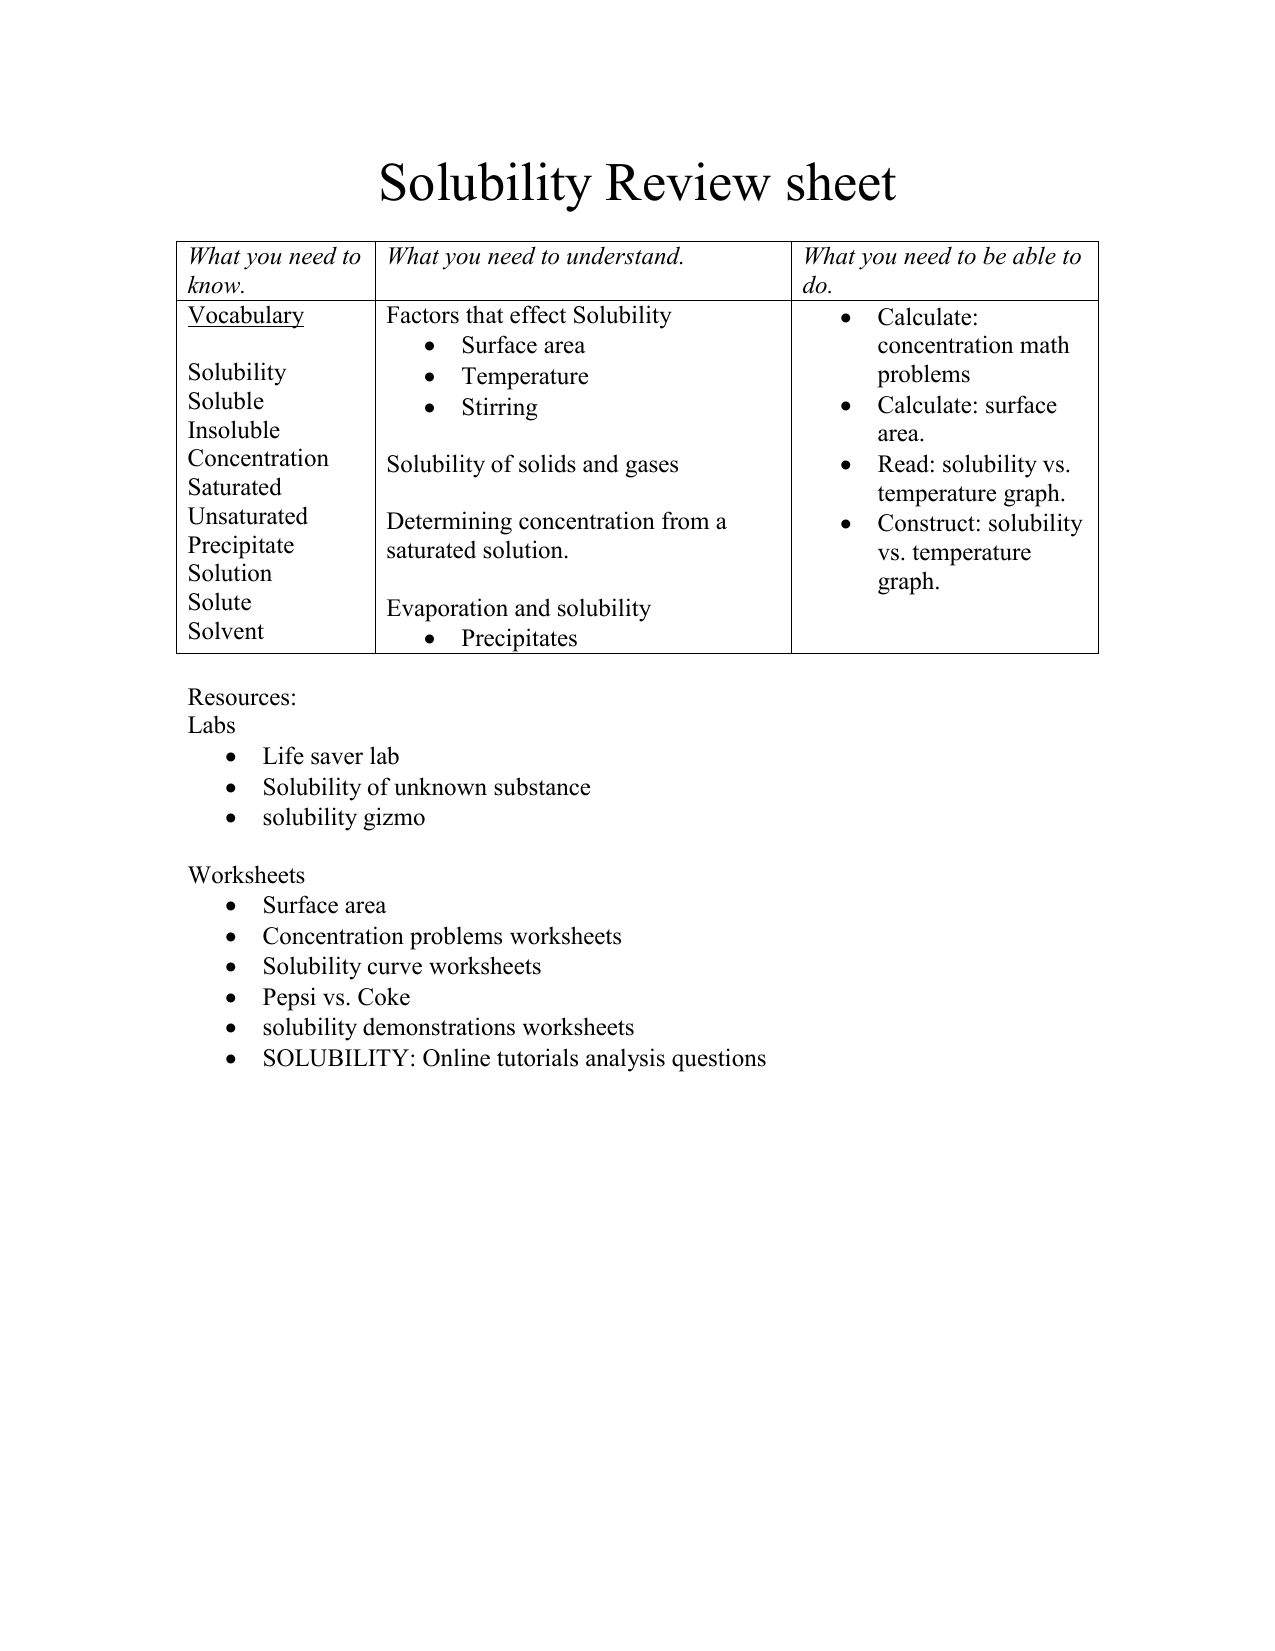 Solubility Review Sheet